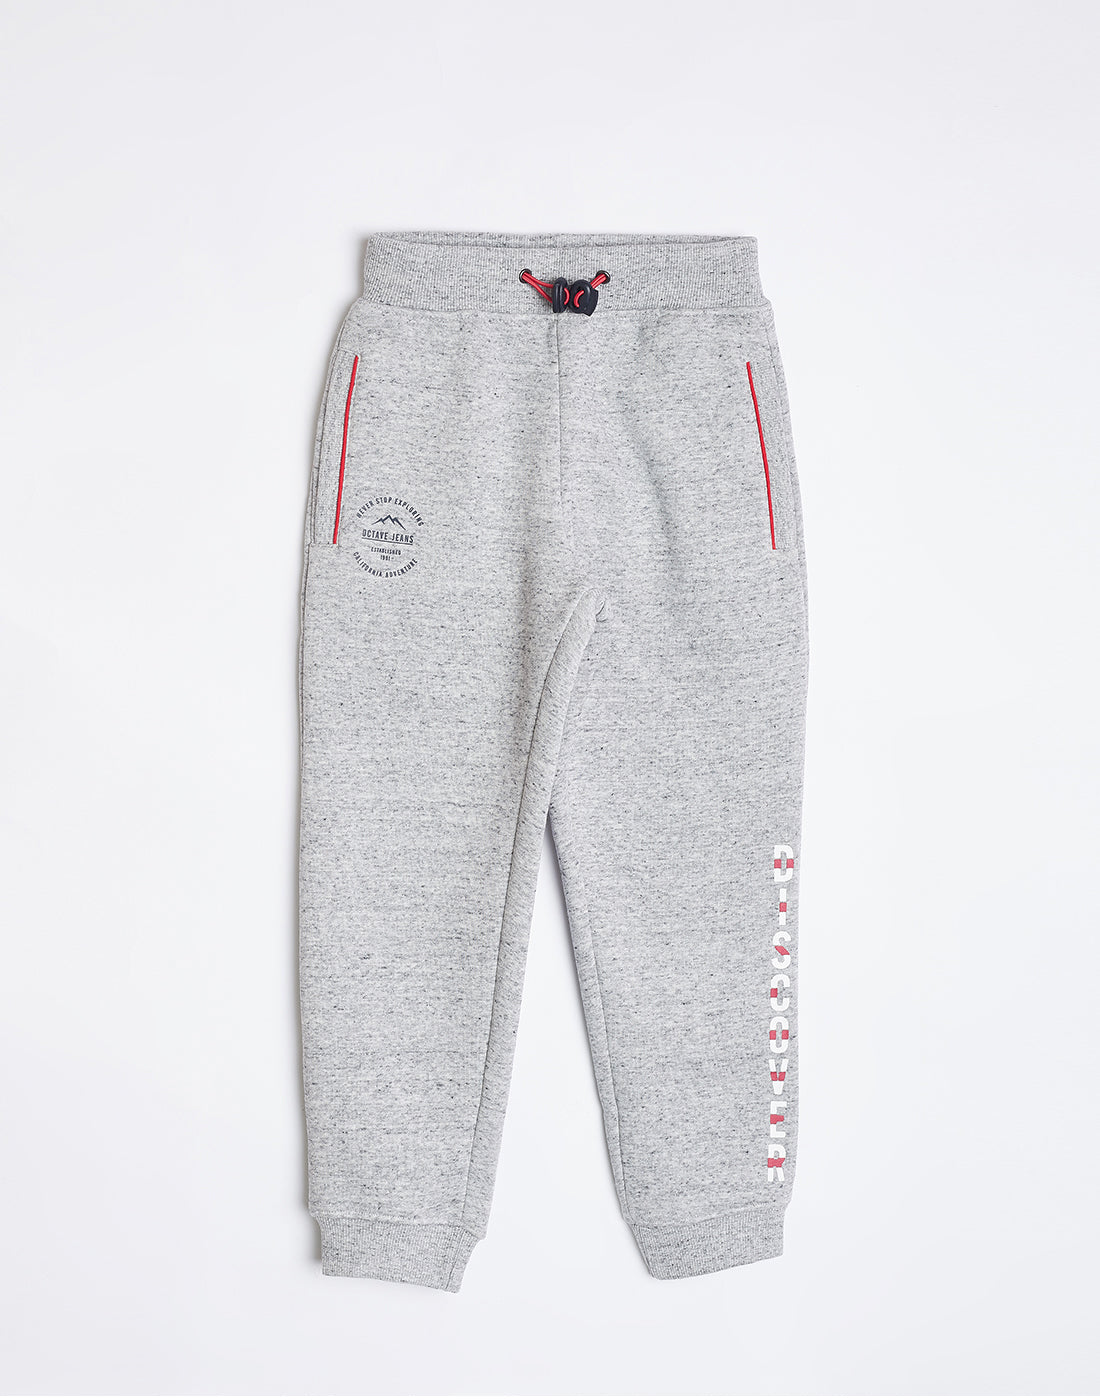 Octave Boys Snowflake White Track pants